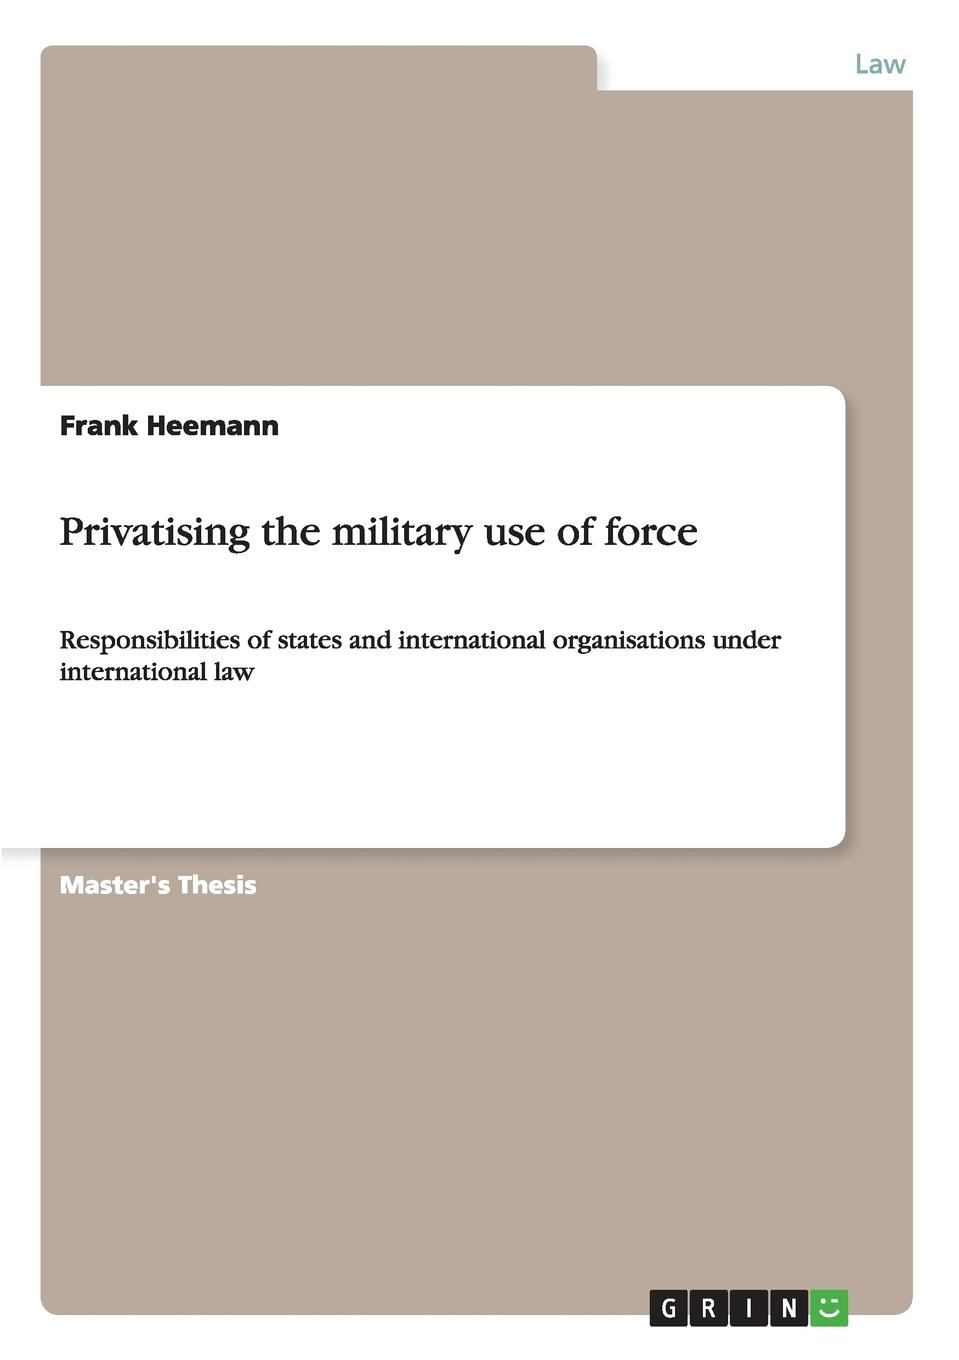 Frank Heemann Privatising the military use of force fastnet force 10 rei paper only